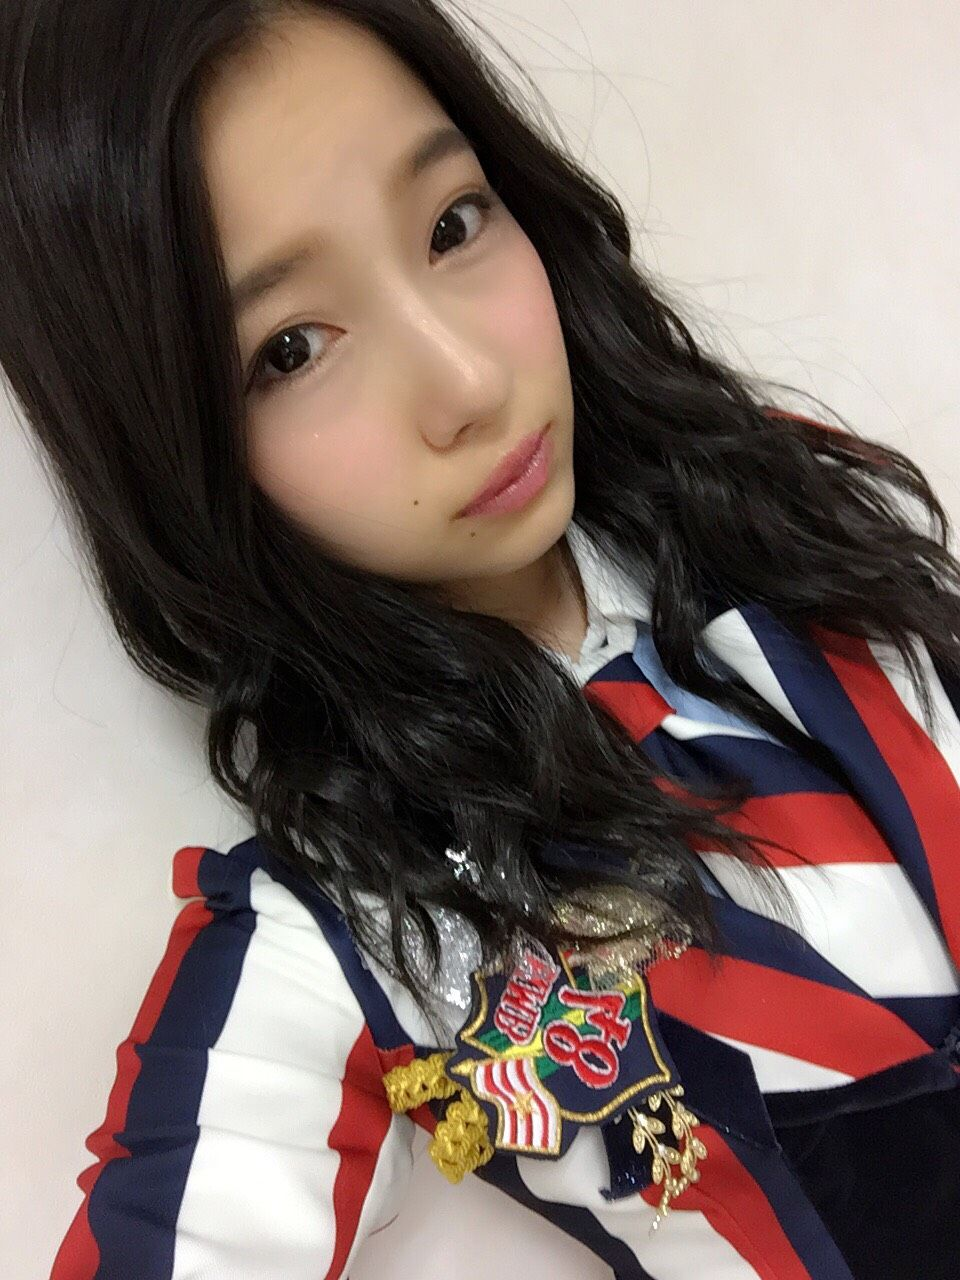 Sae Murase https://plus.google.com/u/0/114433951972746099923/posts/7nuLoesXfey